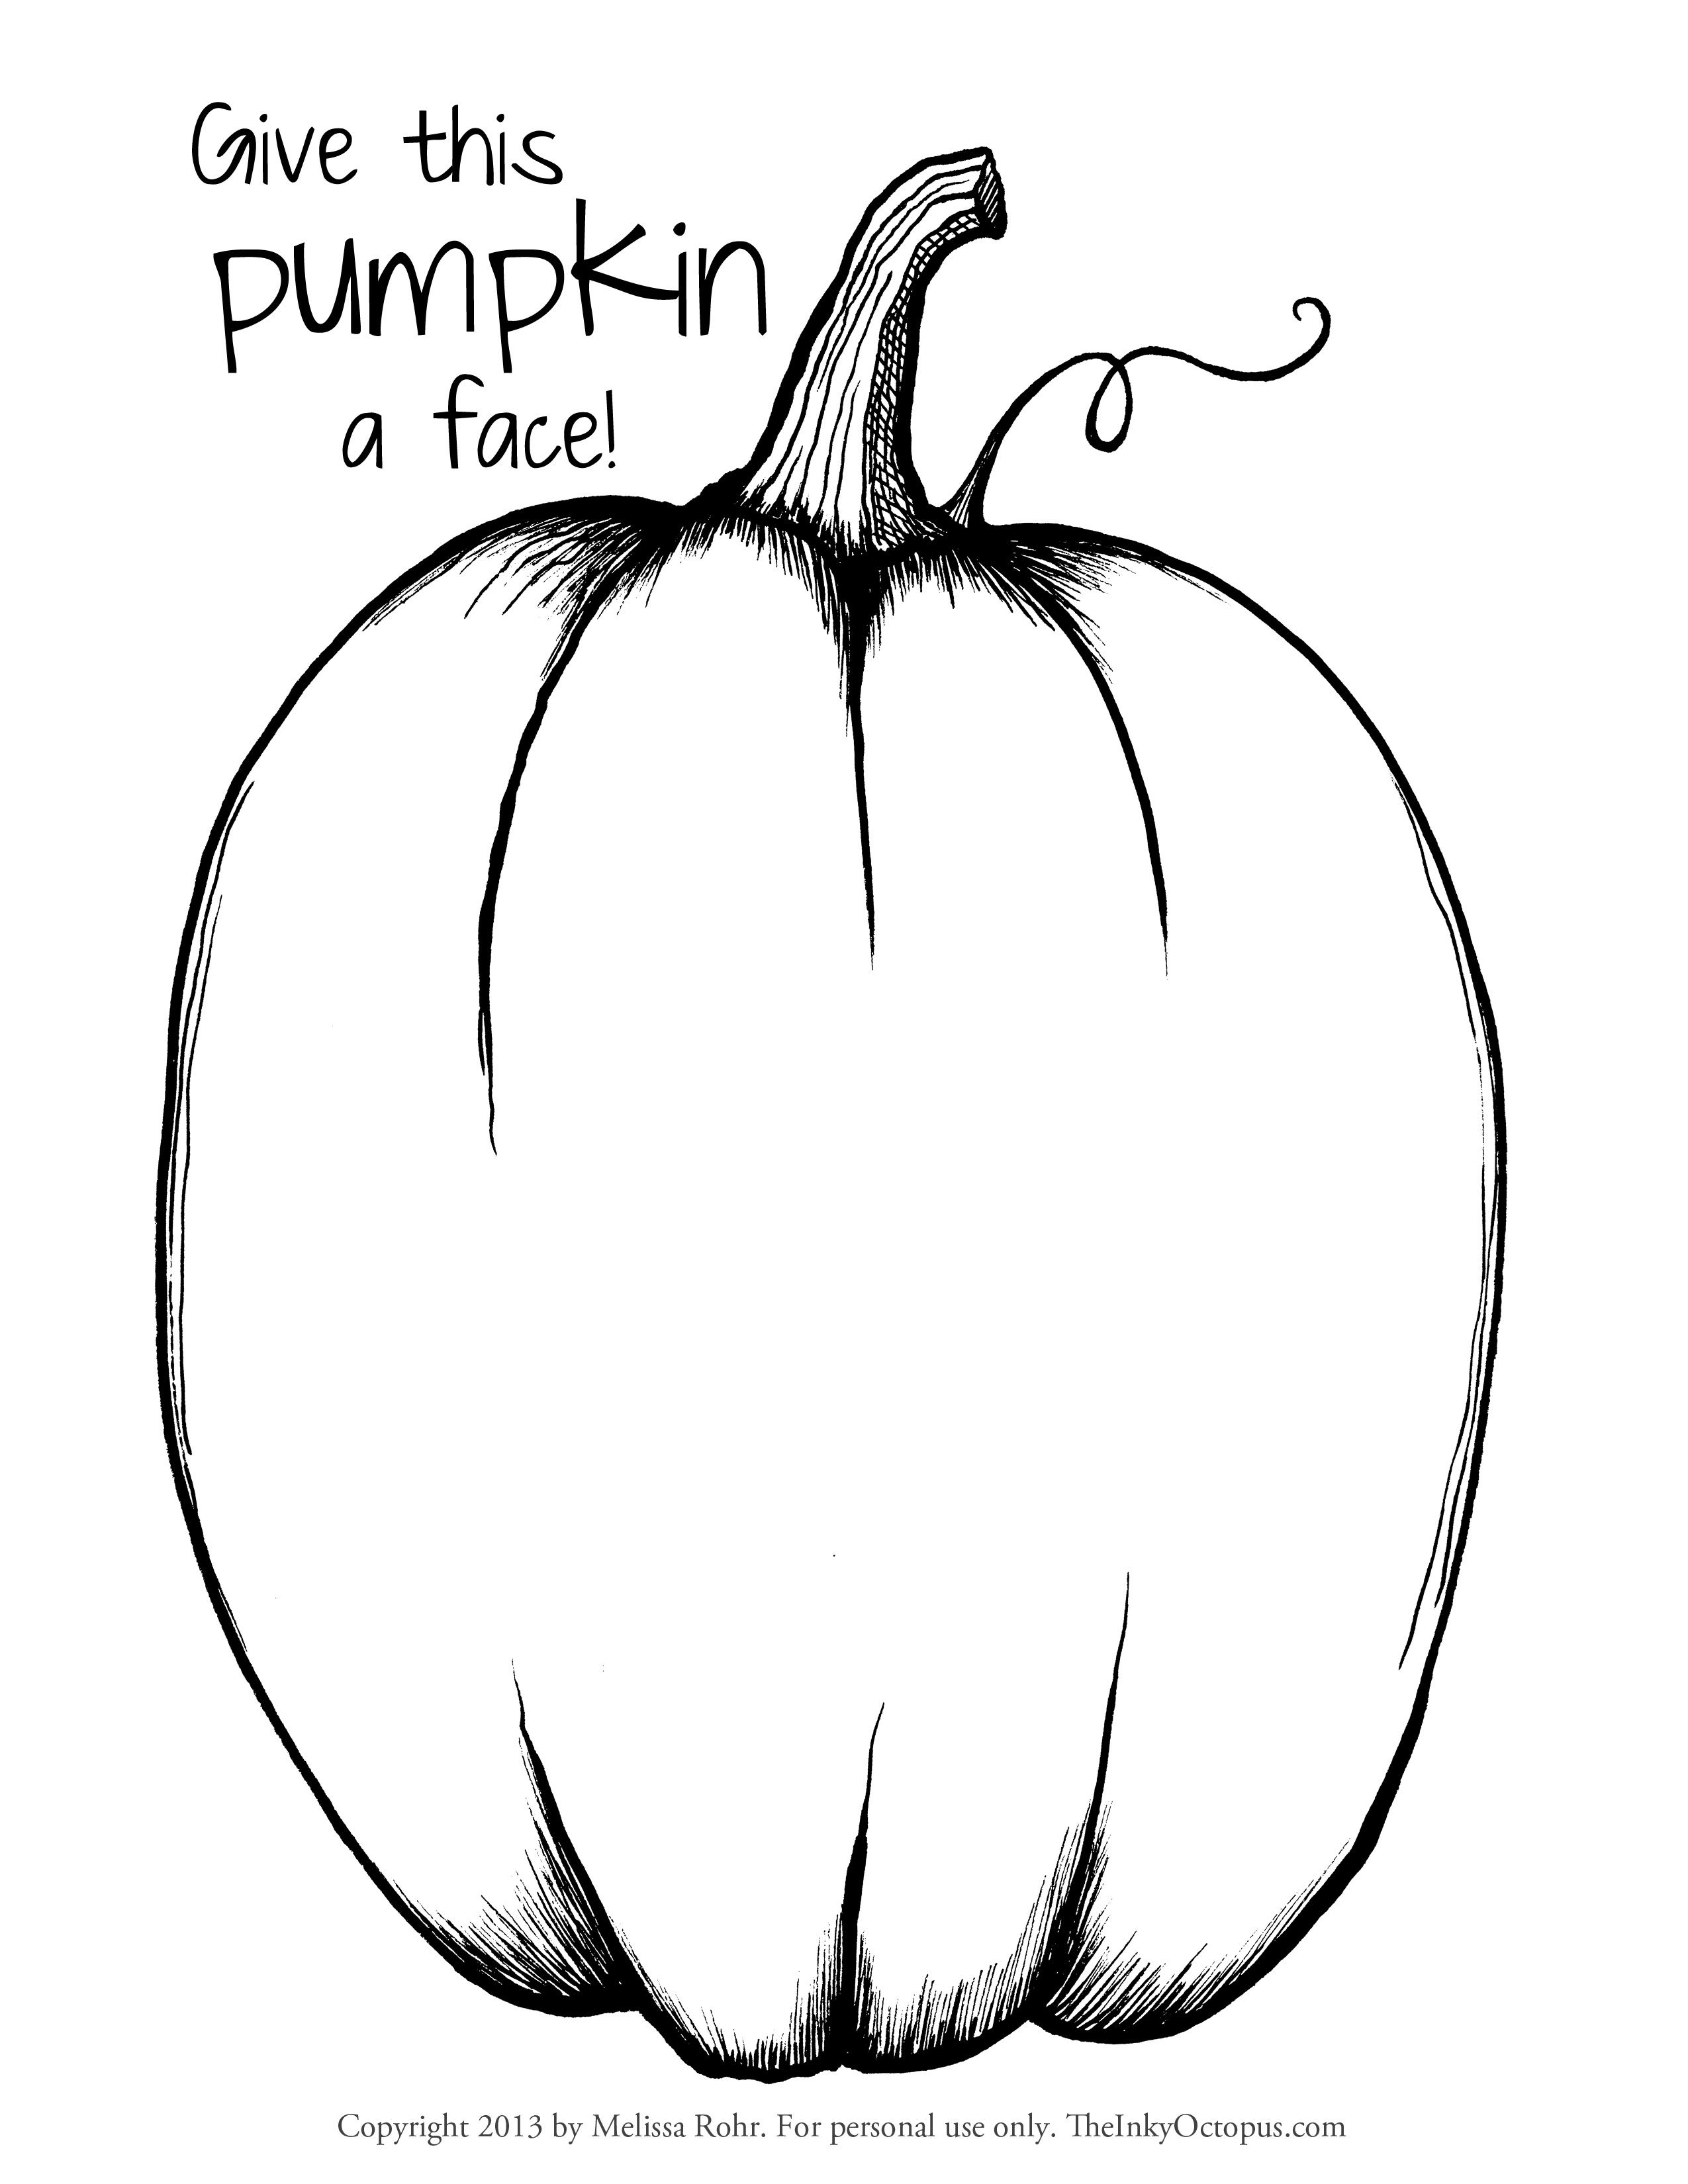 Pumpkin Pattern Coloring Page Printable Free Large Images Halloween Coloring Pages Pumpkin Coloring Pages Pumpkin Coloring Sheet